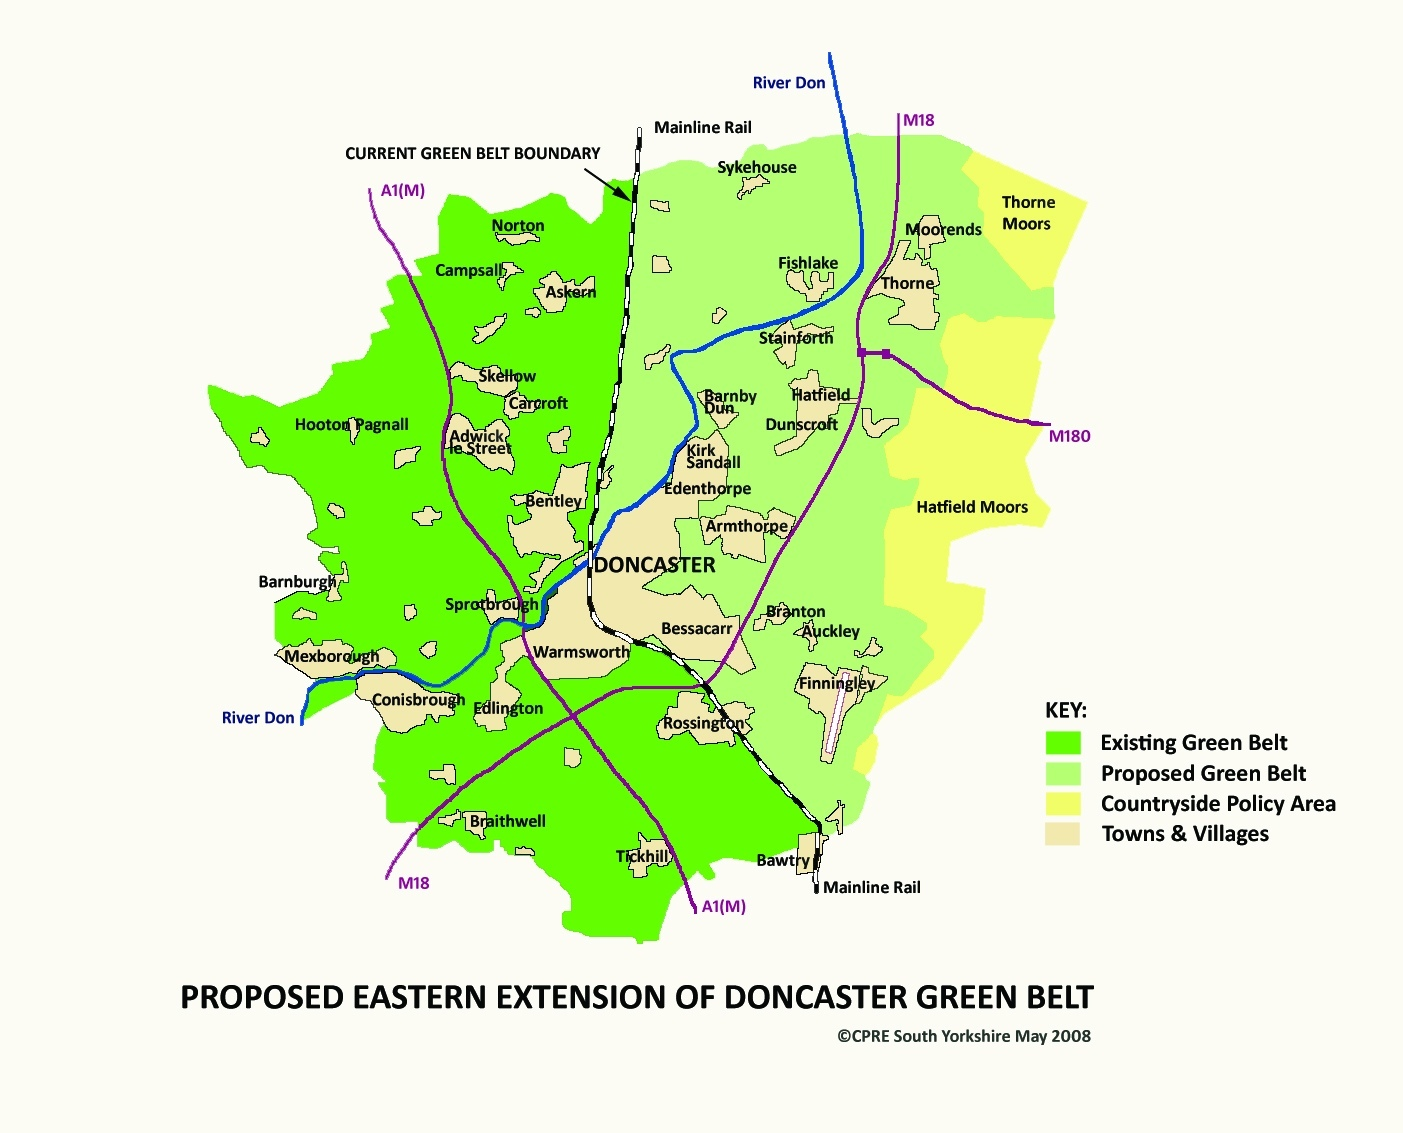 CPRE SY 2008 - Doncaster Green Belt Map copy2